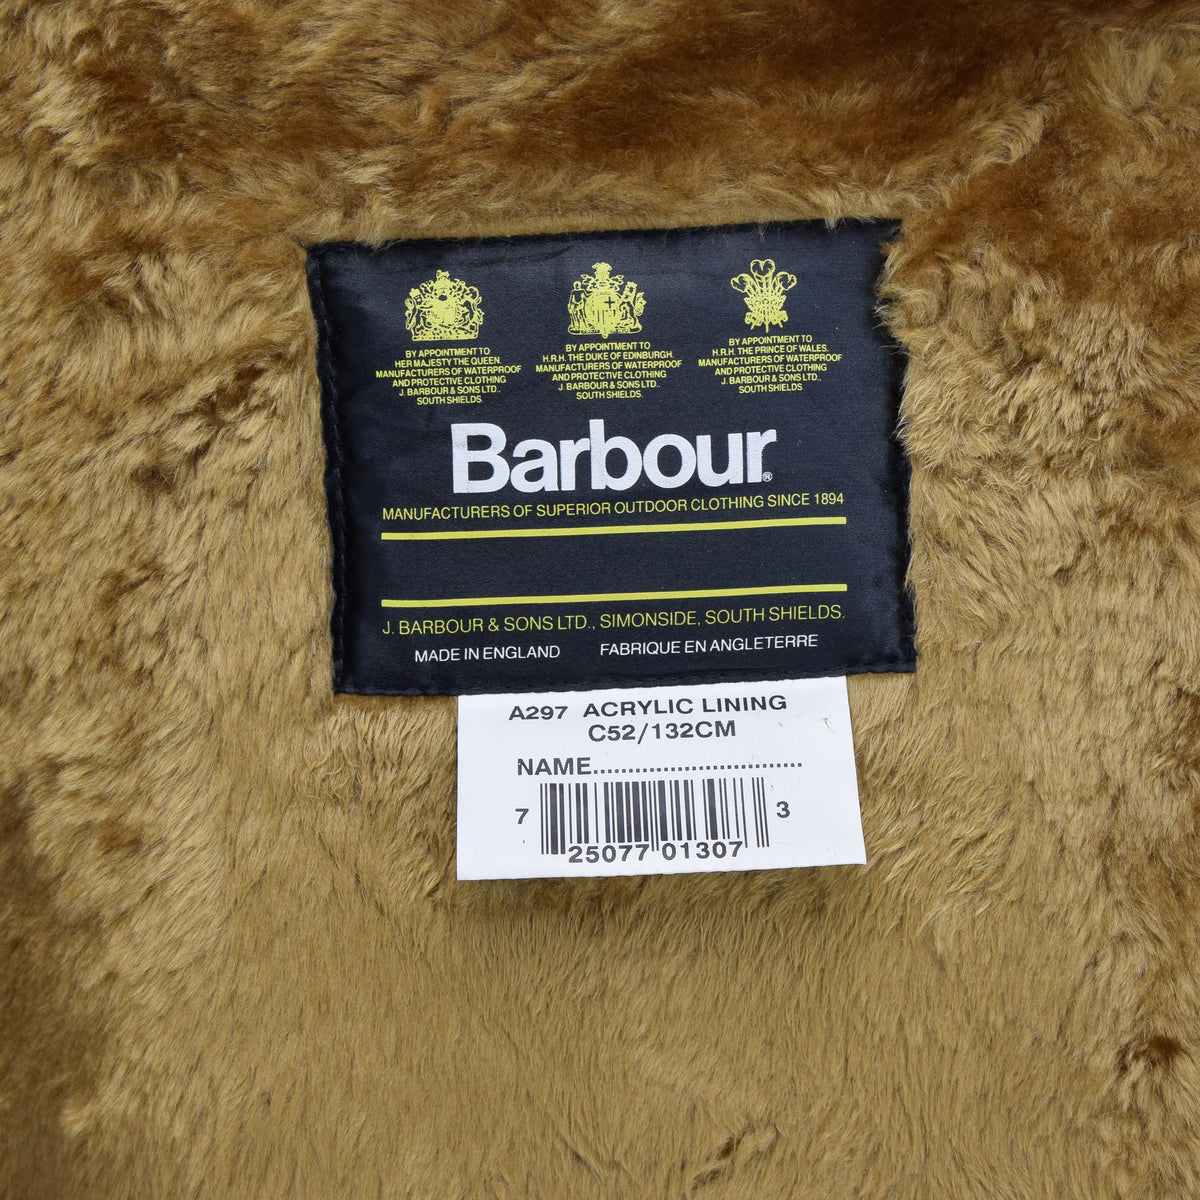 Vintage Barbour A297 Acrylic Lining Faux Fur Liner Made In England C52 / 132cm label